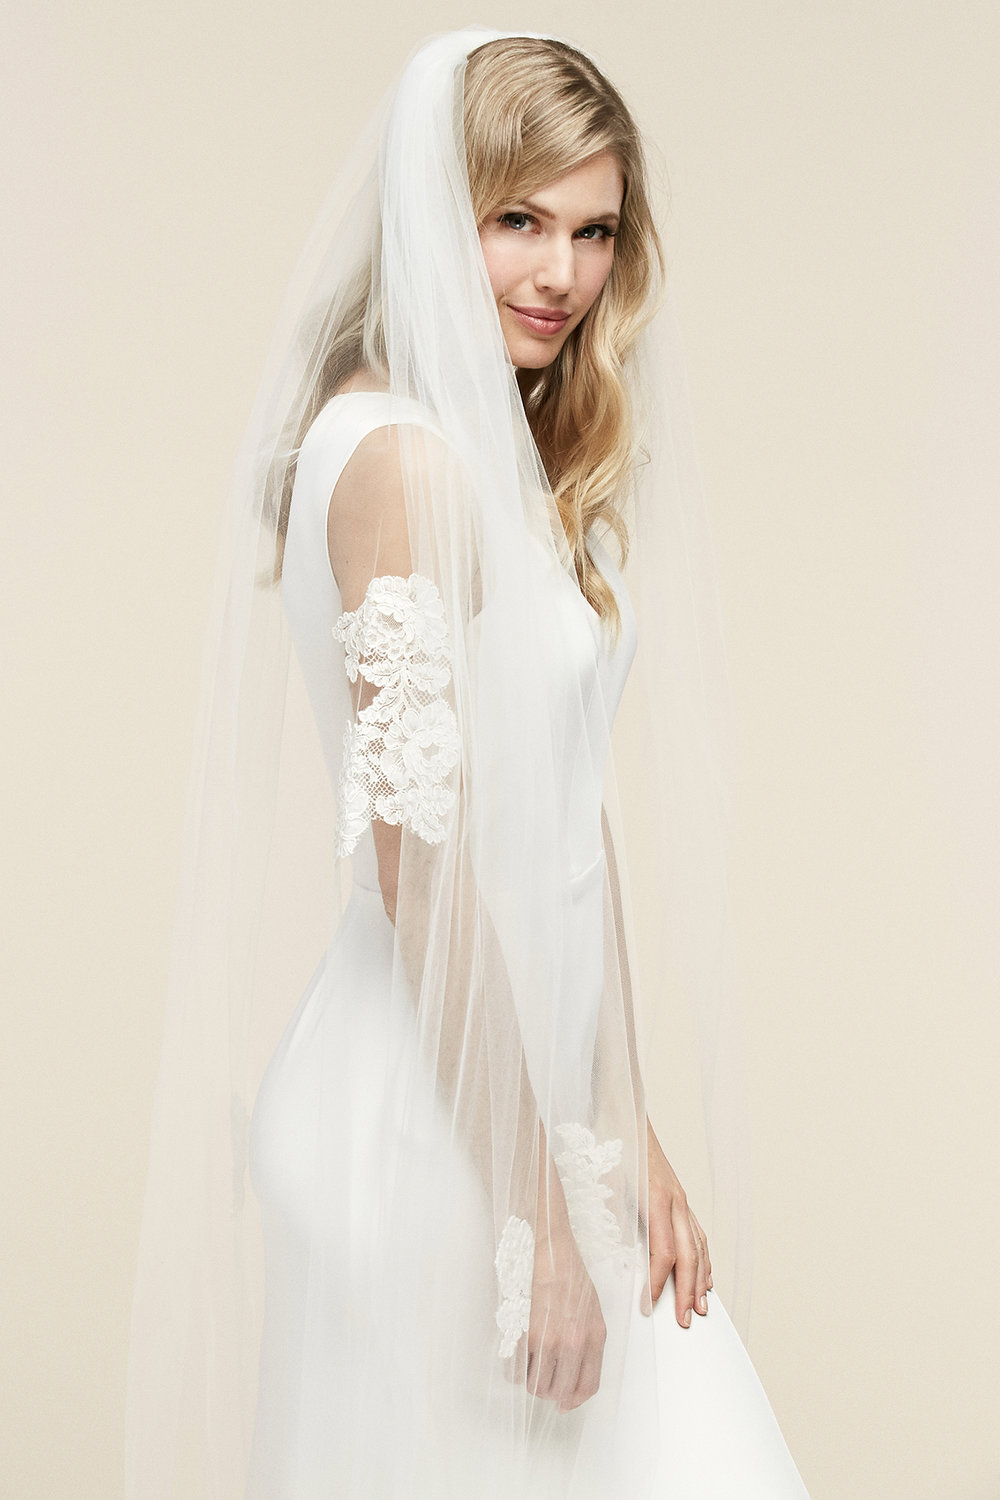 Josie Veil   Details- One tier with scattered Alencon lace detailing all over veil  Cathedral $1,058 - Fingertip $678 - Floor $858